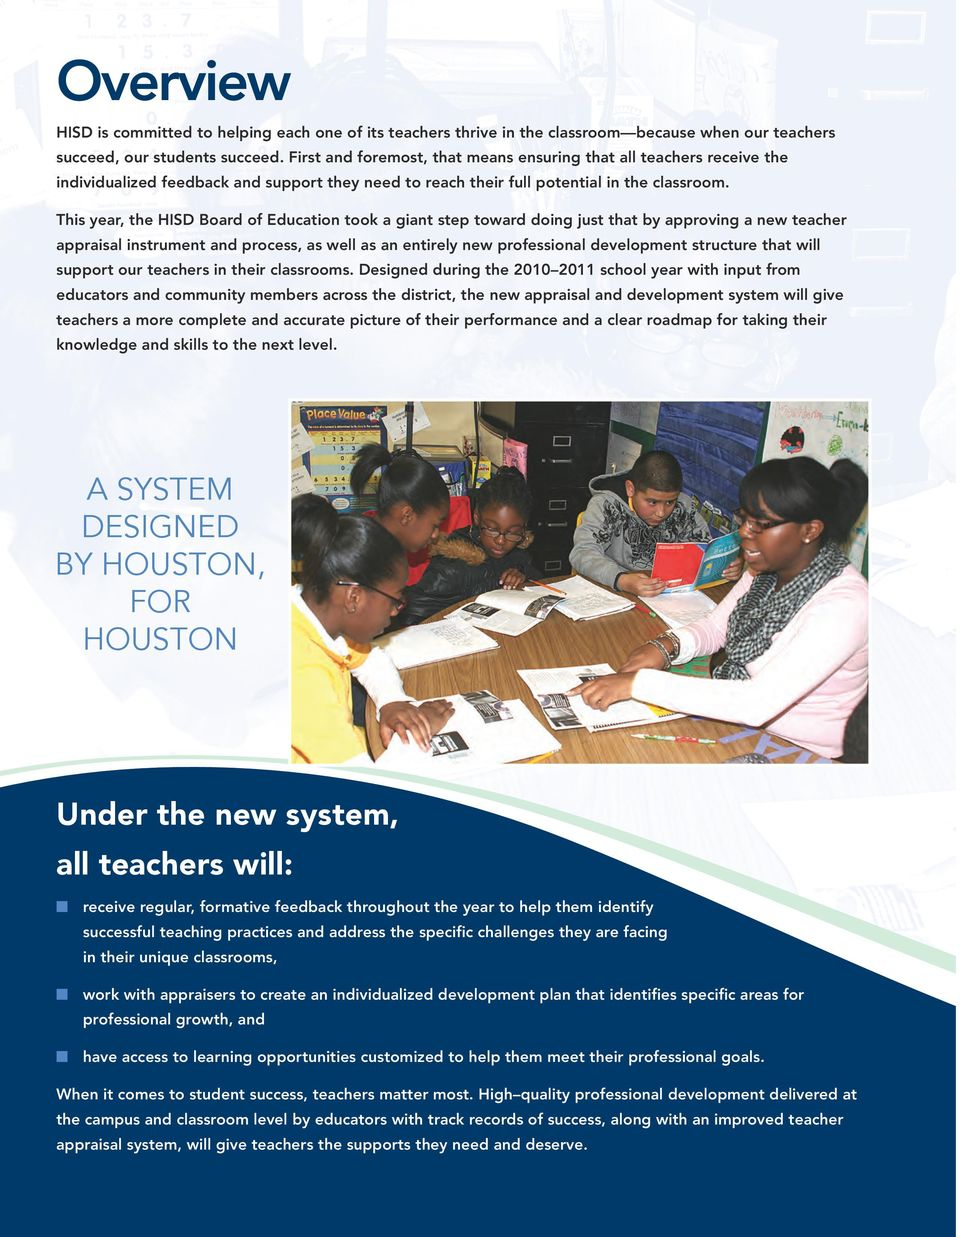 This year, the HISD Board of Education took a giant step toward doing just that by approving a new teacher appraisal instrument and process, as well as an entirely new professional development